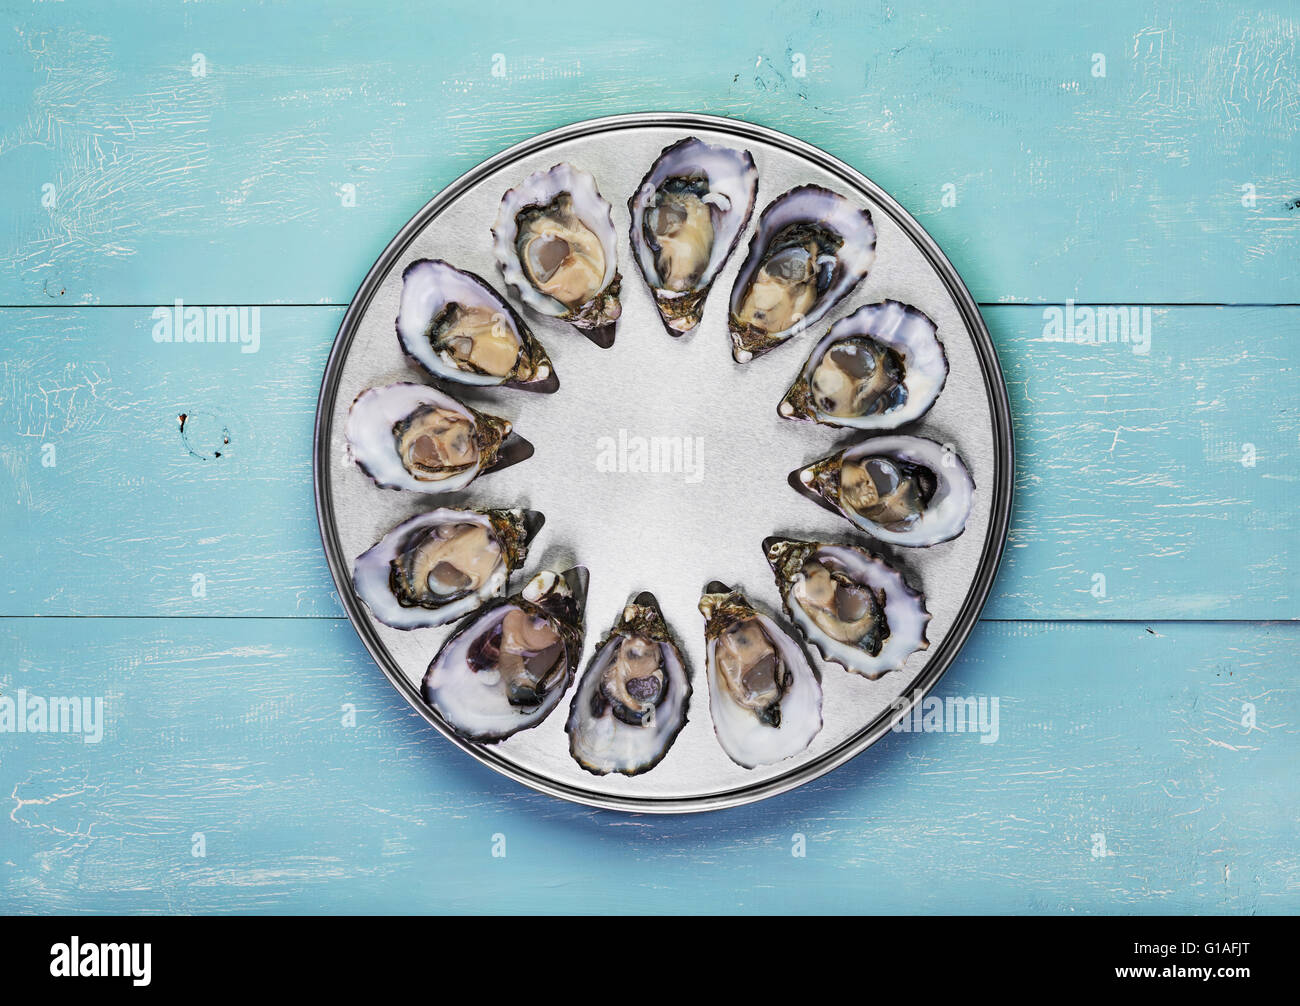 dozen fresh oysters on special cooking and serving metal tray - Stock Image